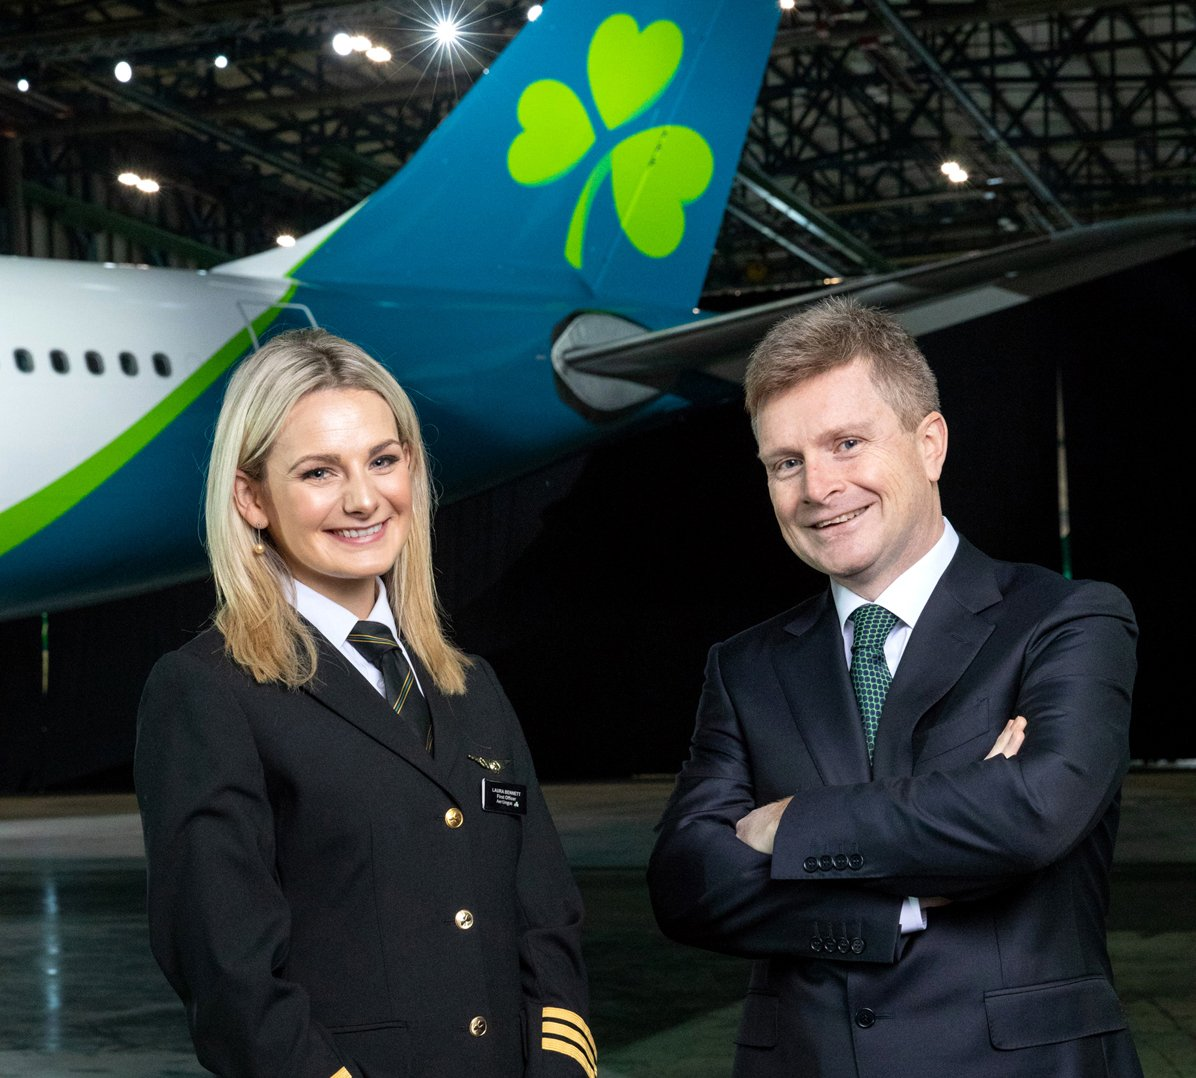 The Girl with the Shamrock Tattoo! Aer Lingus - #Ireland : https://t.co/xNvwctTE9R https://t.co/uigHtGQKW5